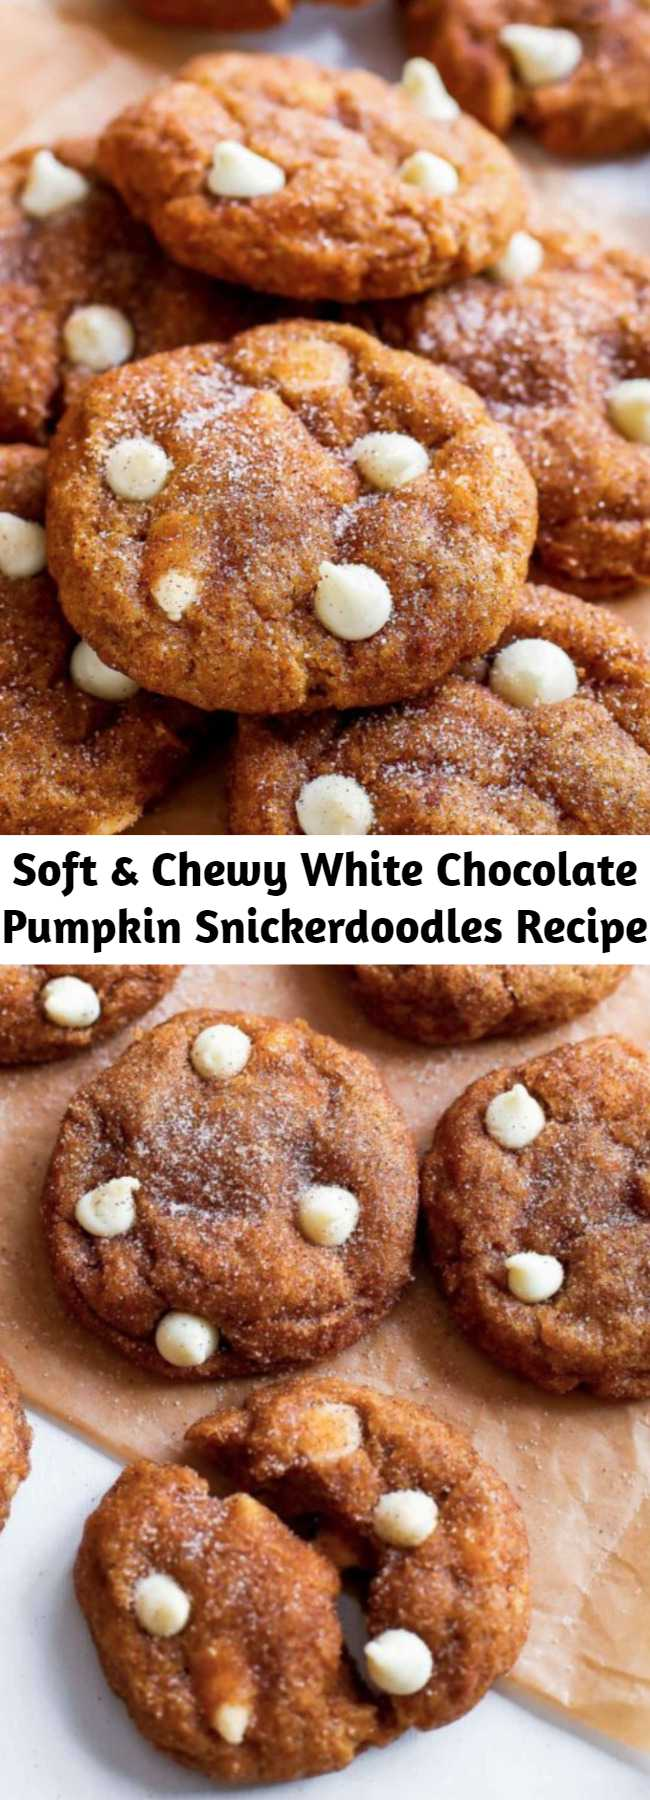 Soft & Chewy White Chocolate Pumpkin Snickerdoodles Recipe - These soft & chewy snickerdoodle cookies are full of pumpkin, white chocolate, and cinnamon sugar. Everything you love about snickerdoodle cookies and pumpkin pie in one. Warning: they disappear quickly, so make a double batch!